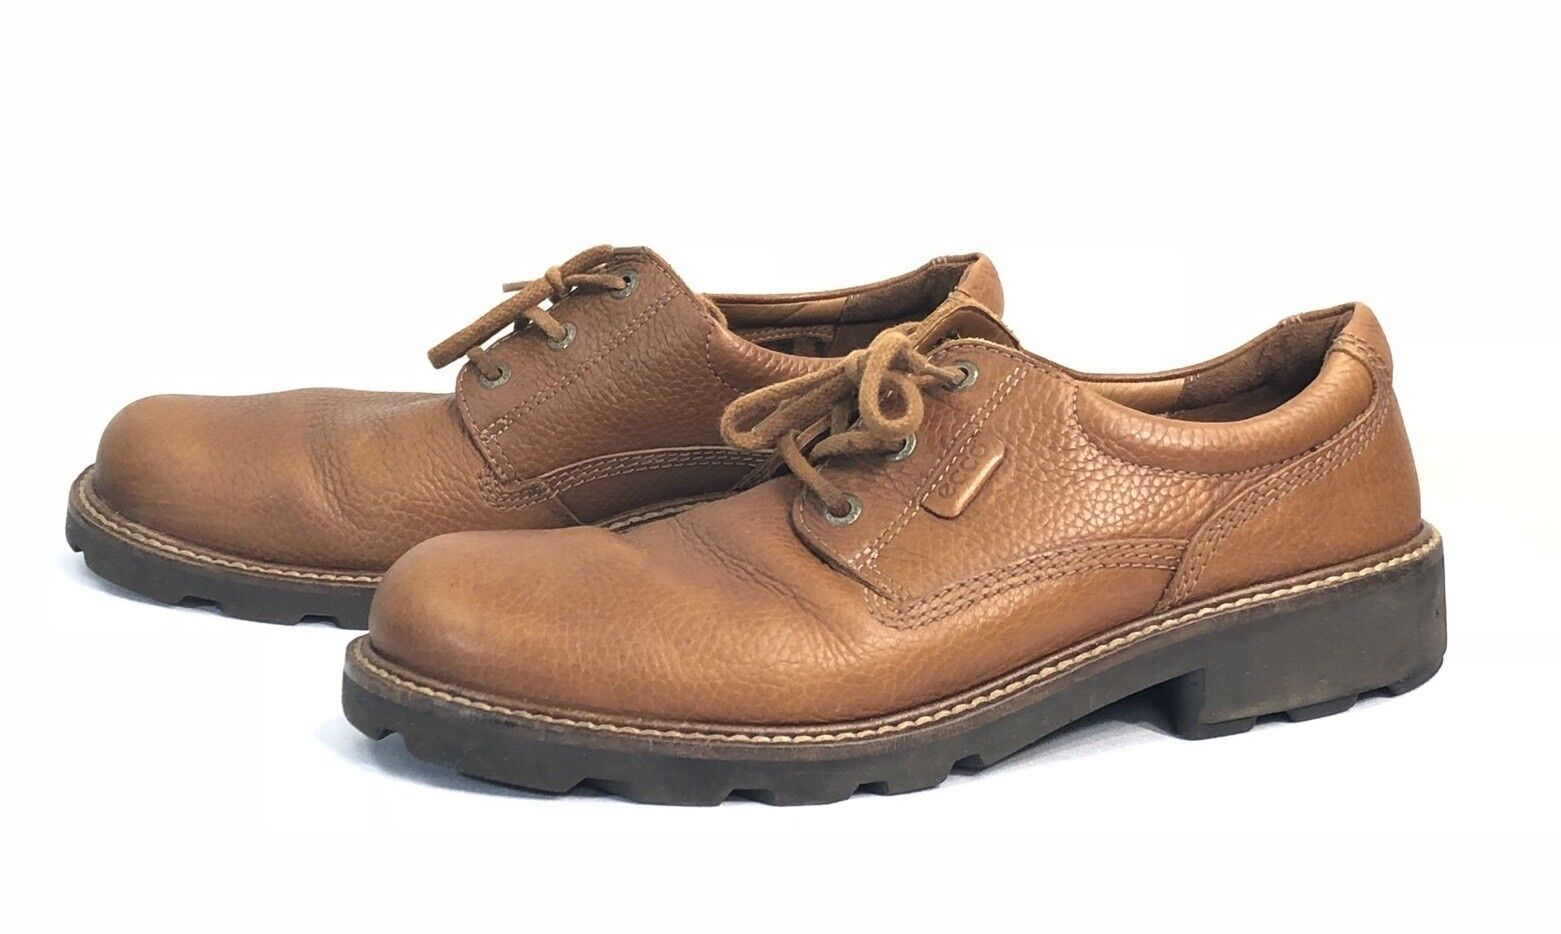 Ecco Tan Brown Pebbled Leather Lace Up Men Oxfords shoes Size US 12-12.5